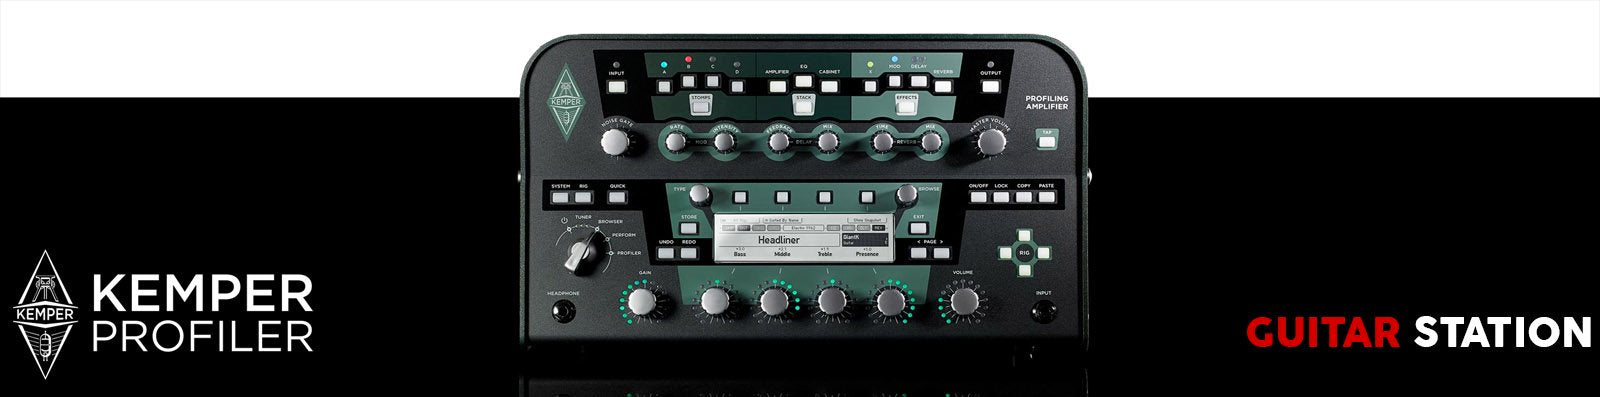 Australia's best Kemper Profiler deals at Guitar Station Melbourne